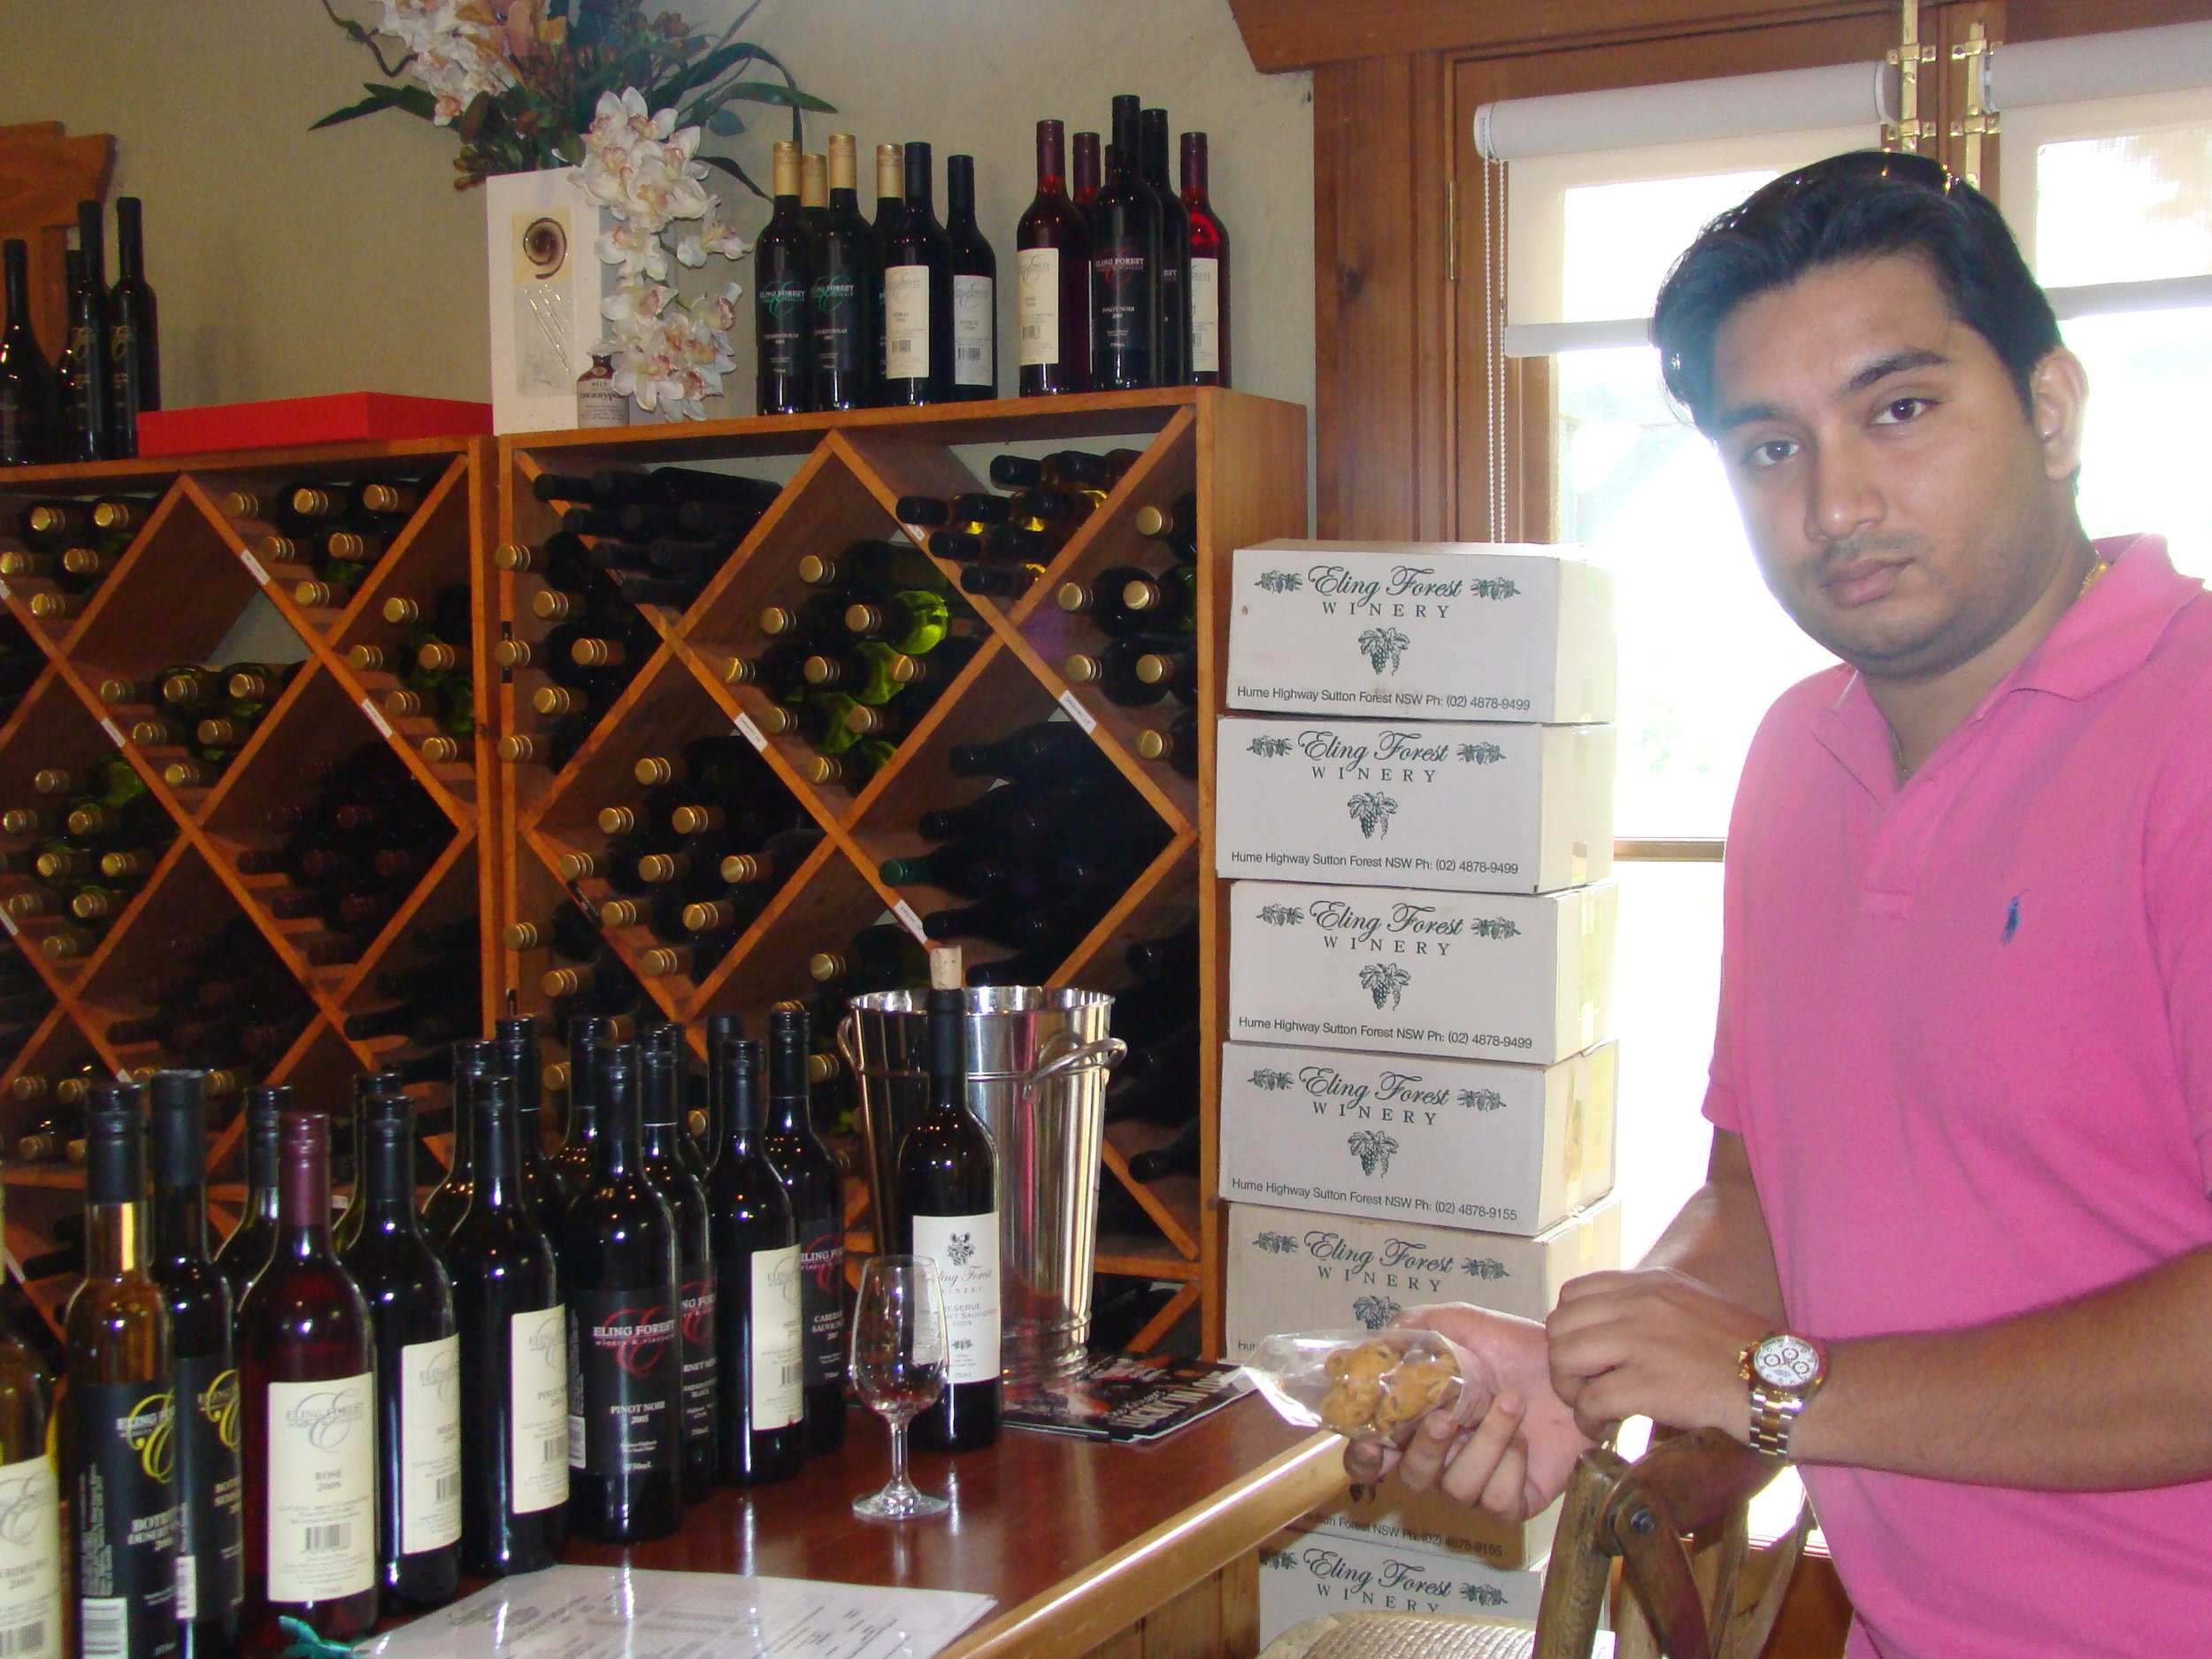 World famous wines